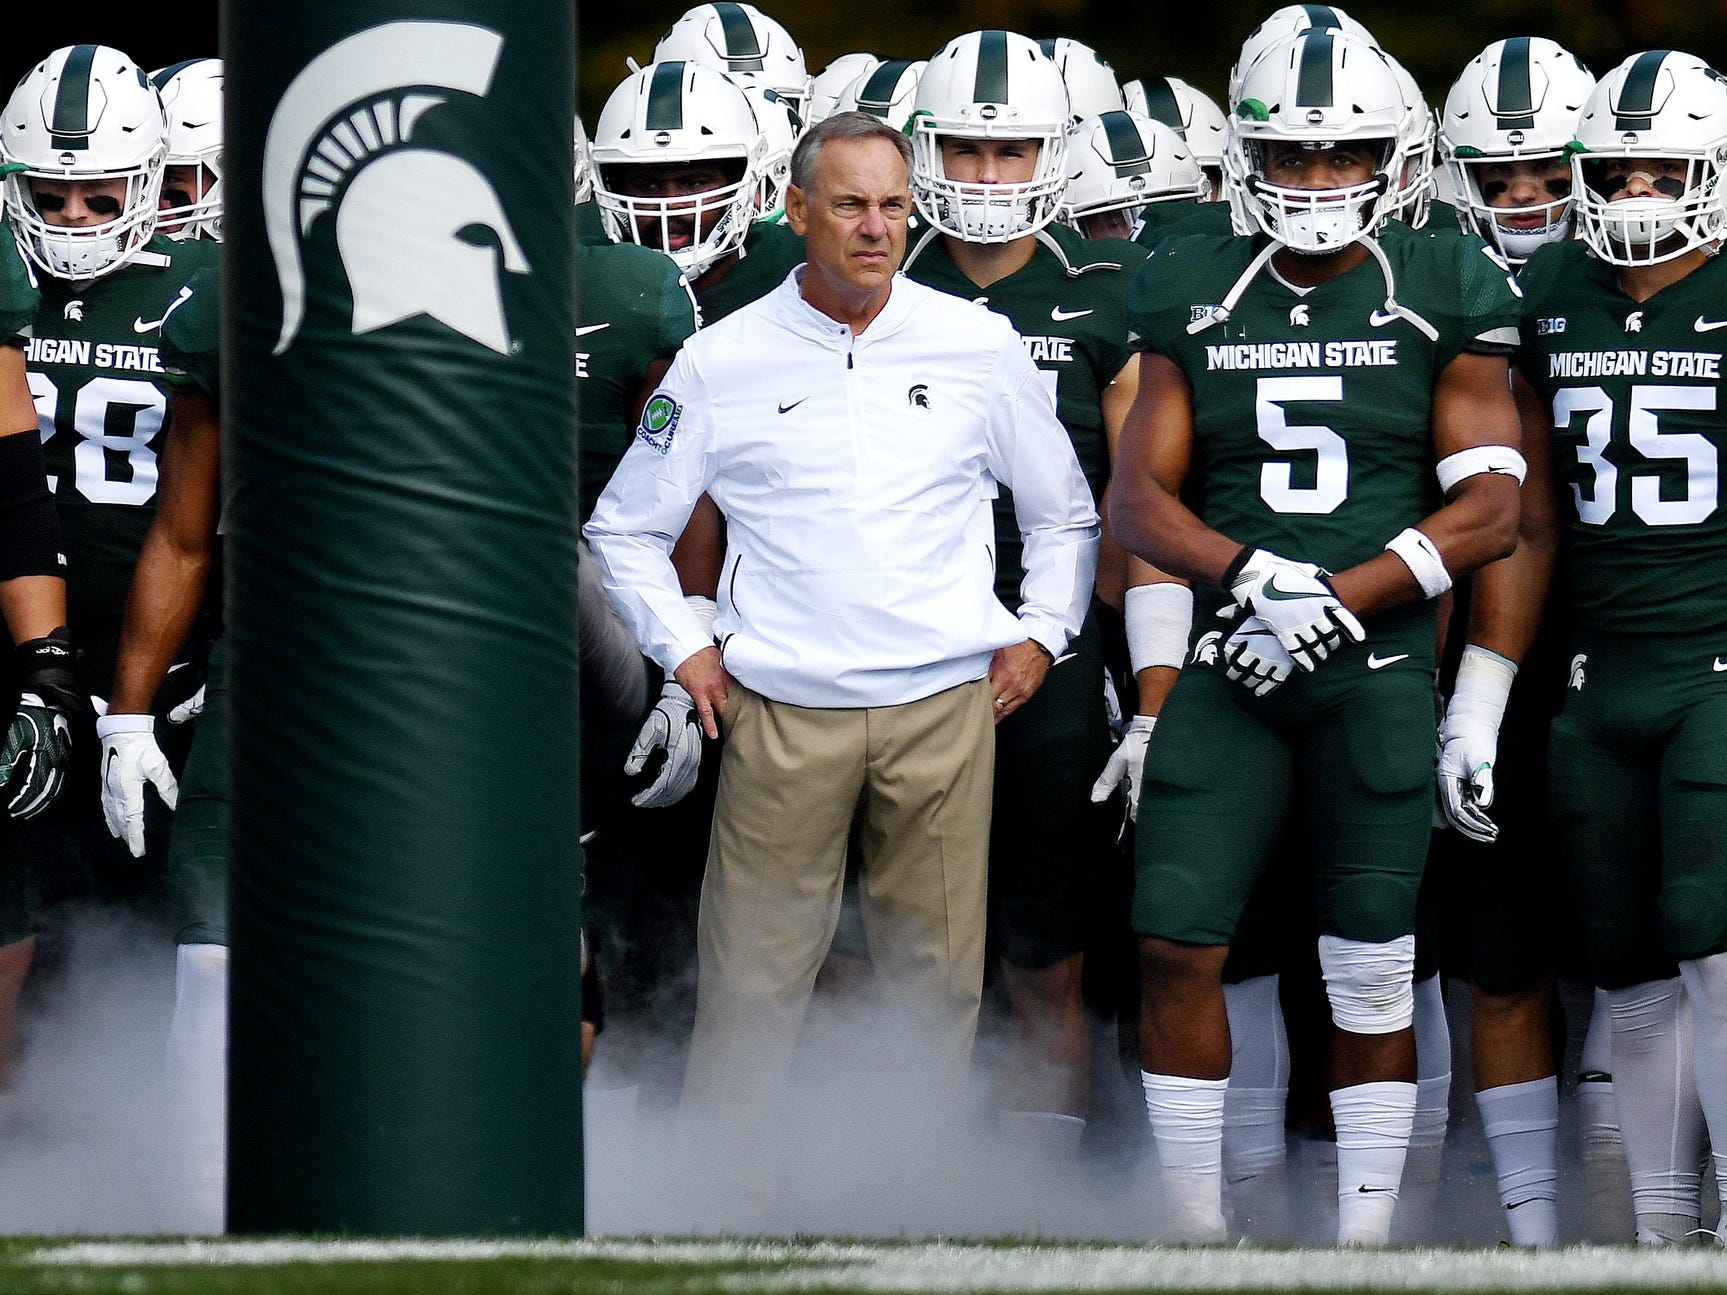 Head coach Mark Dantonio and the Michigan State Spartans prepare to take the field before their game against Central Michigan on Saturday, Sept. 29, 2018, at Spartan Stadium in East Lansing.